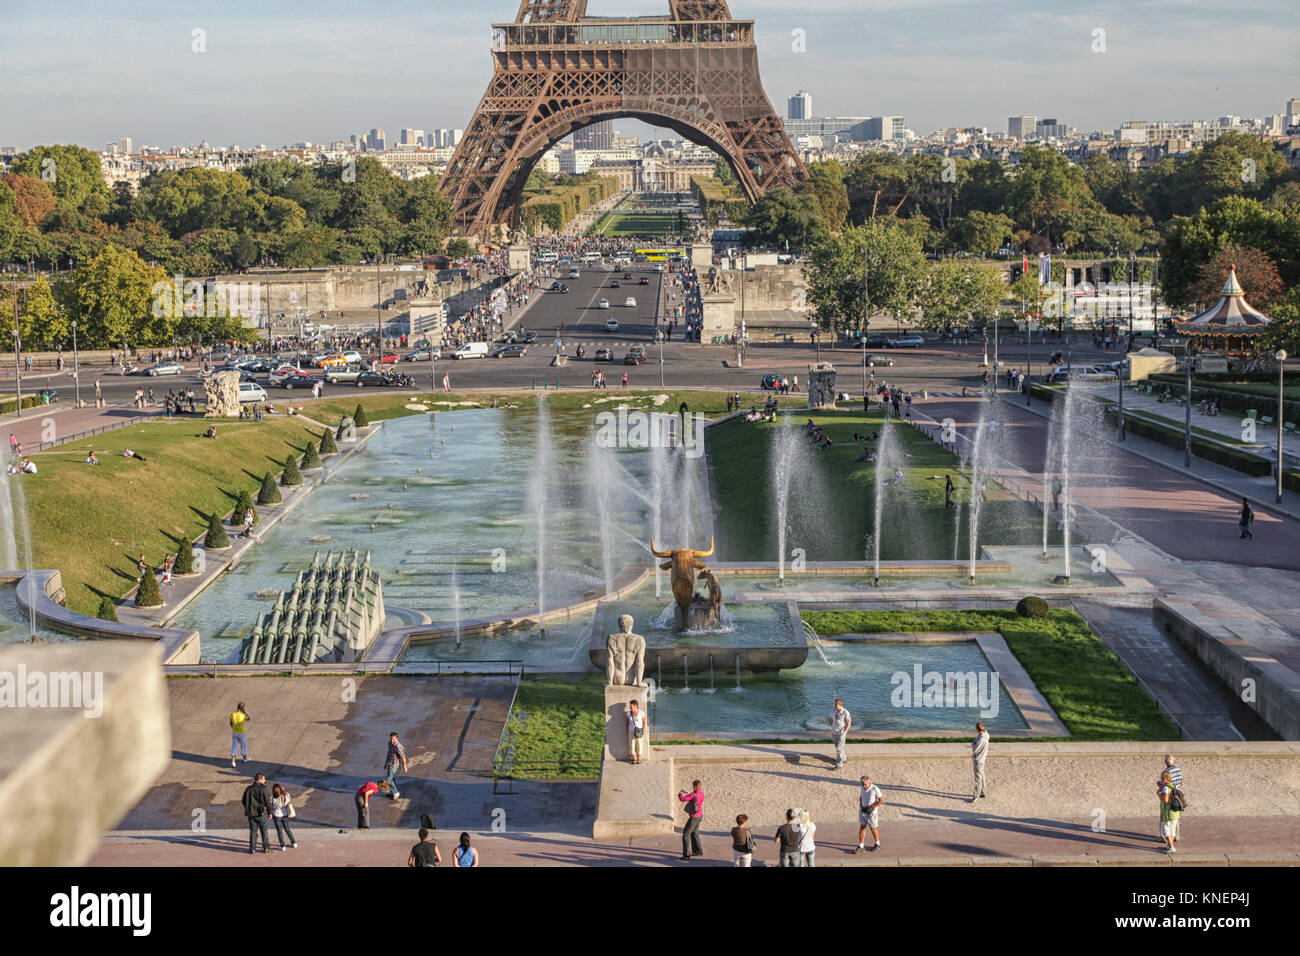 Eiffel tower in Paris, France seen from palais de Chaillot with tourists taking pictures - Stock Image